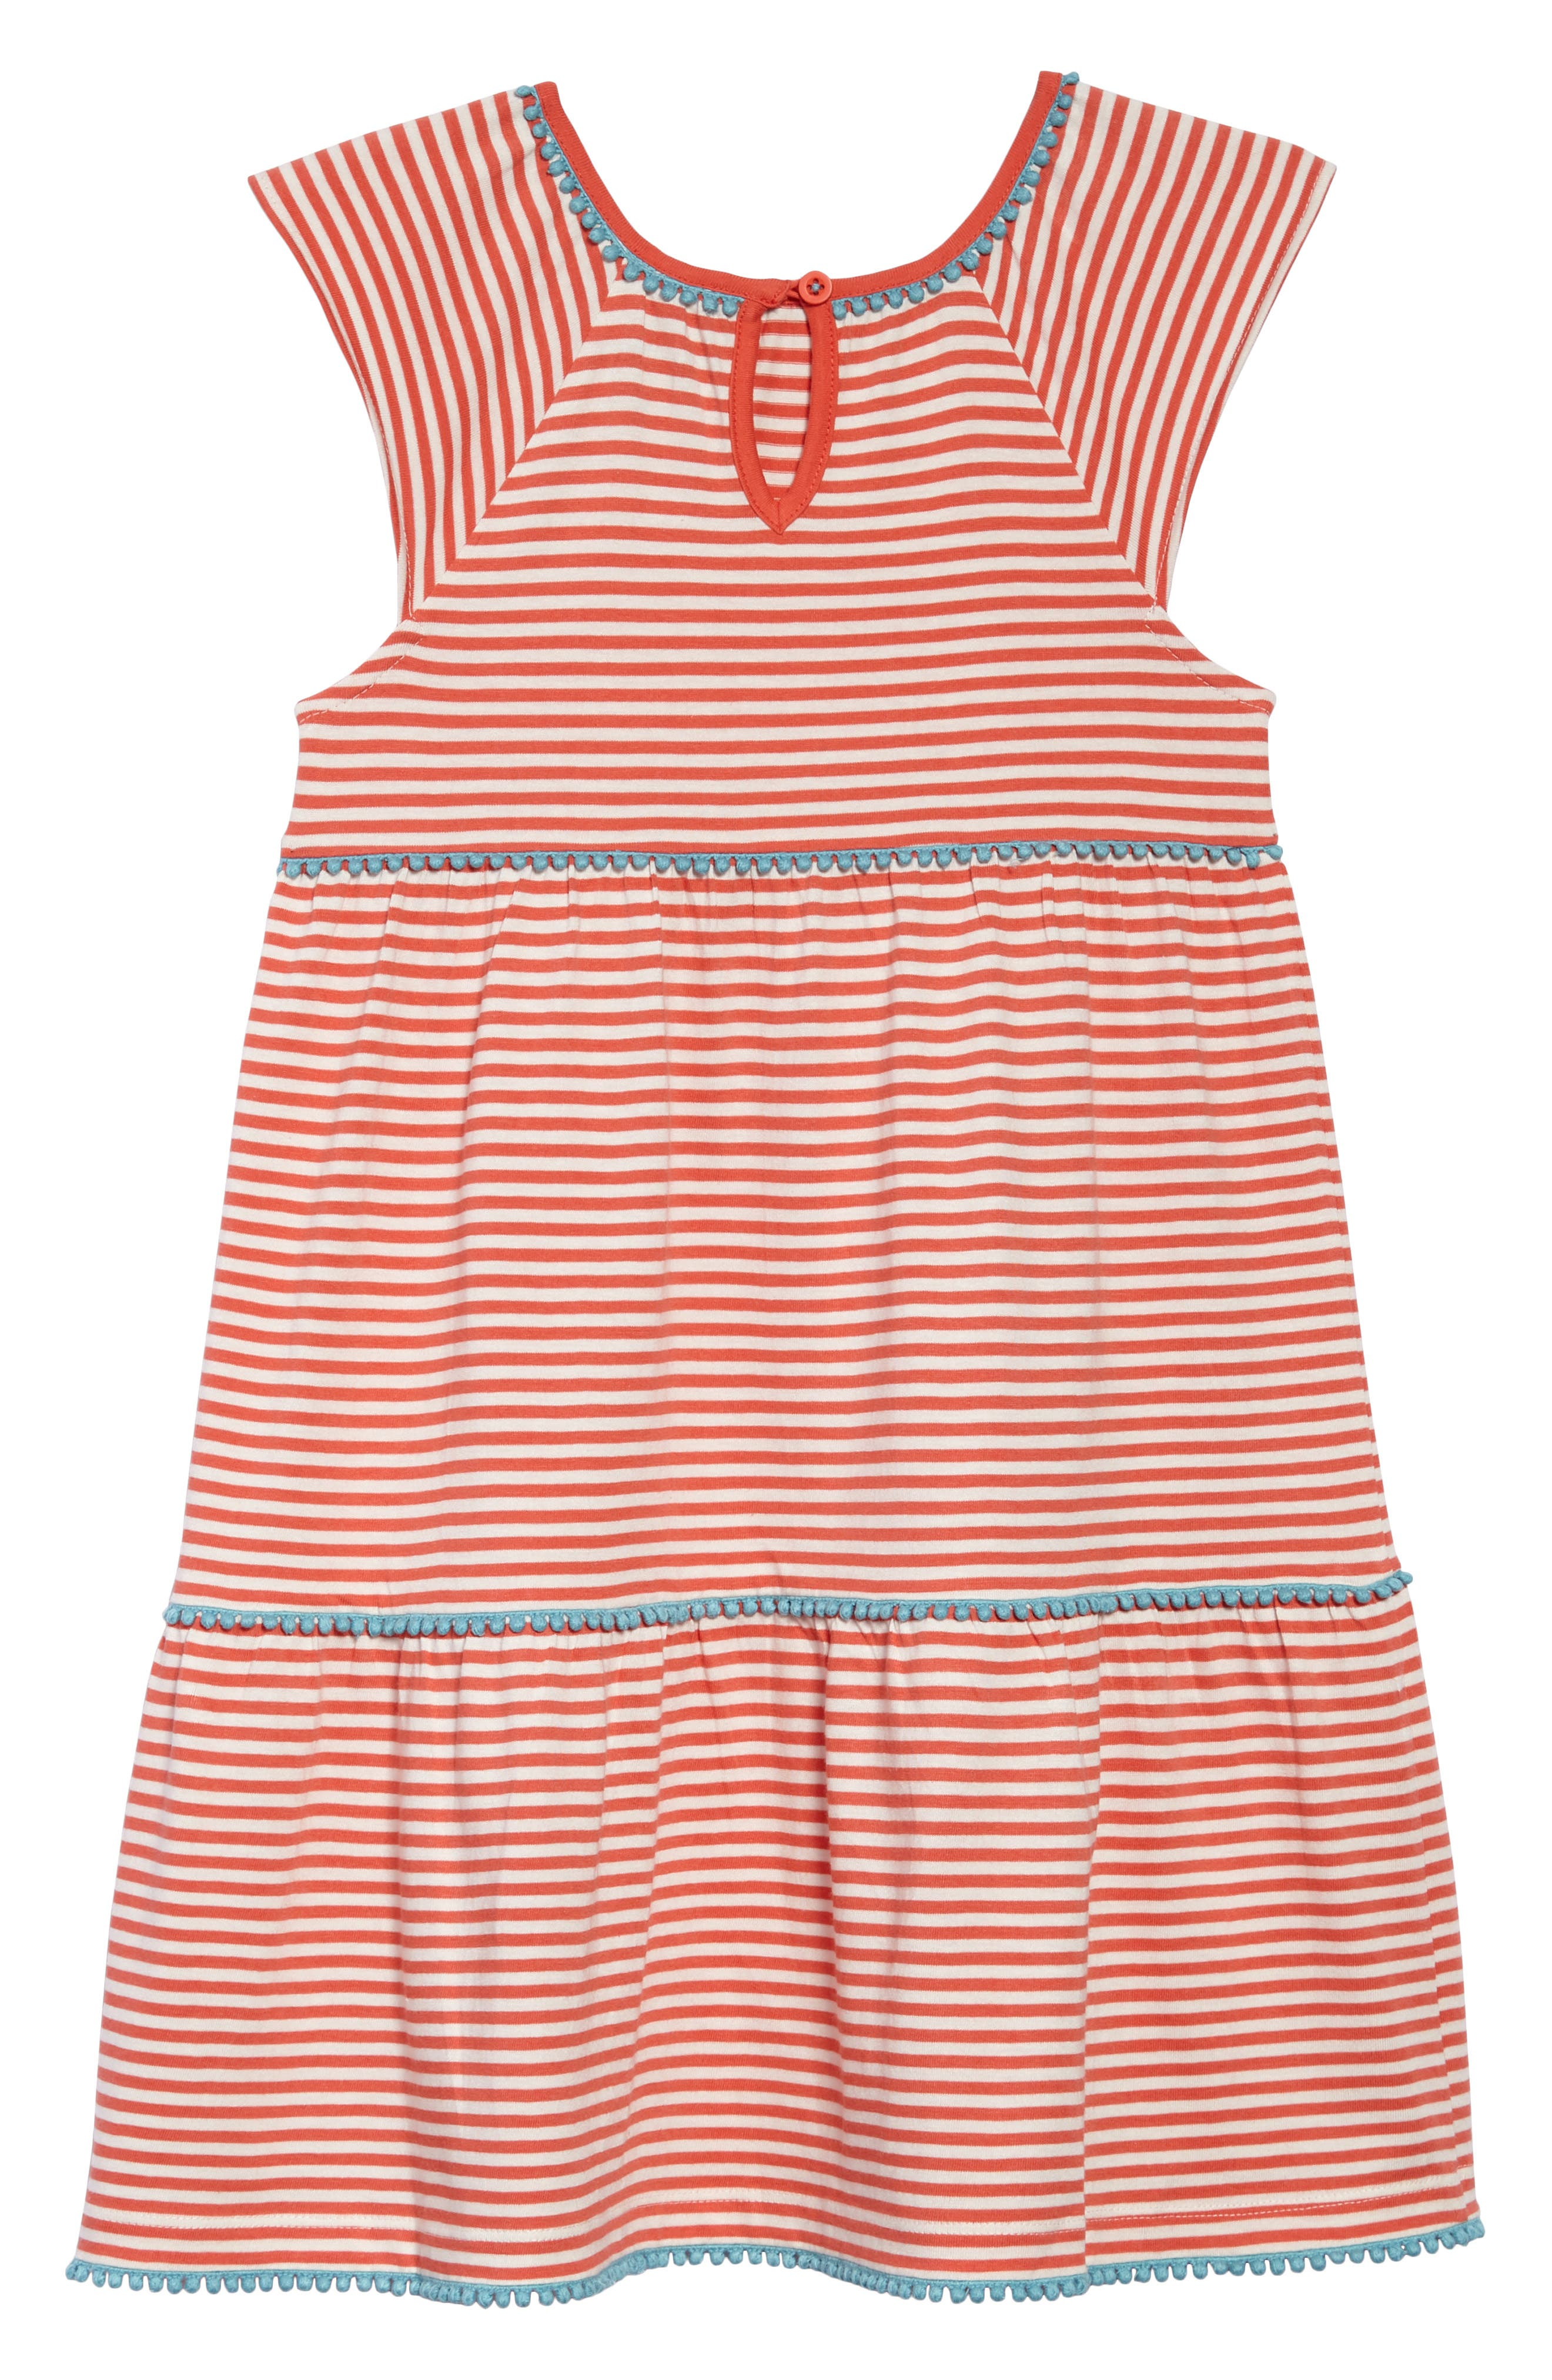 Tiered Jersey Frill Dress,                             Alternate thumbnail 2, color,                             Melon Crush Orange/ Ivory Ora